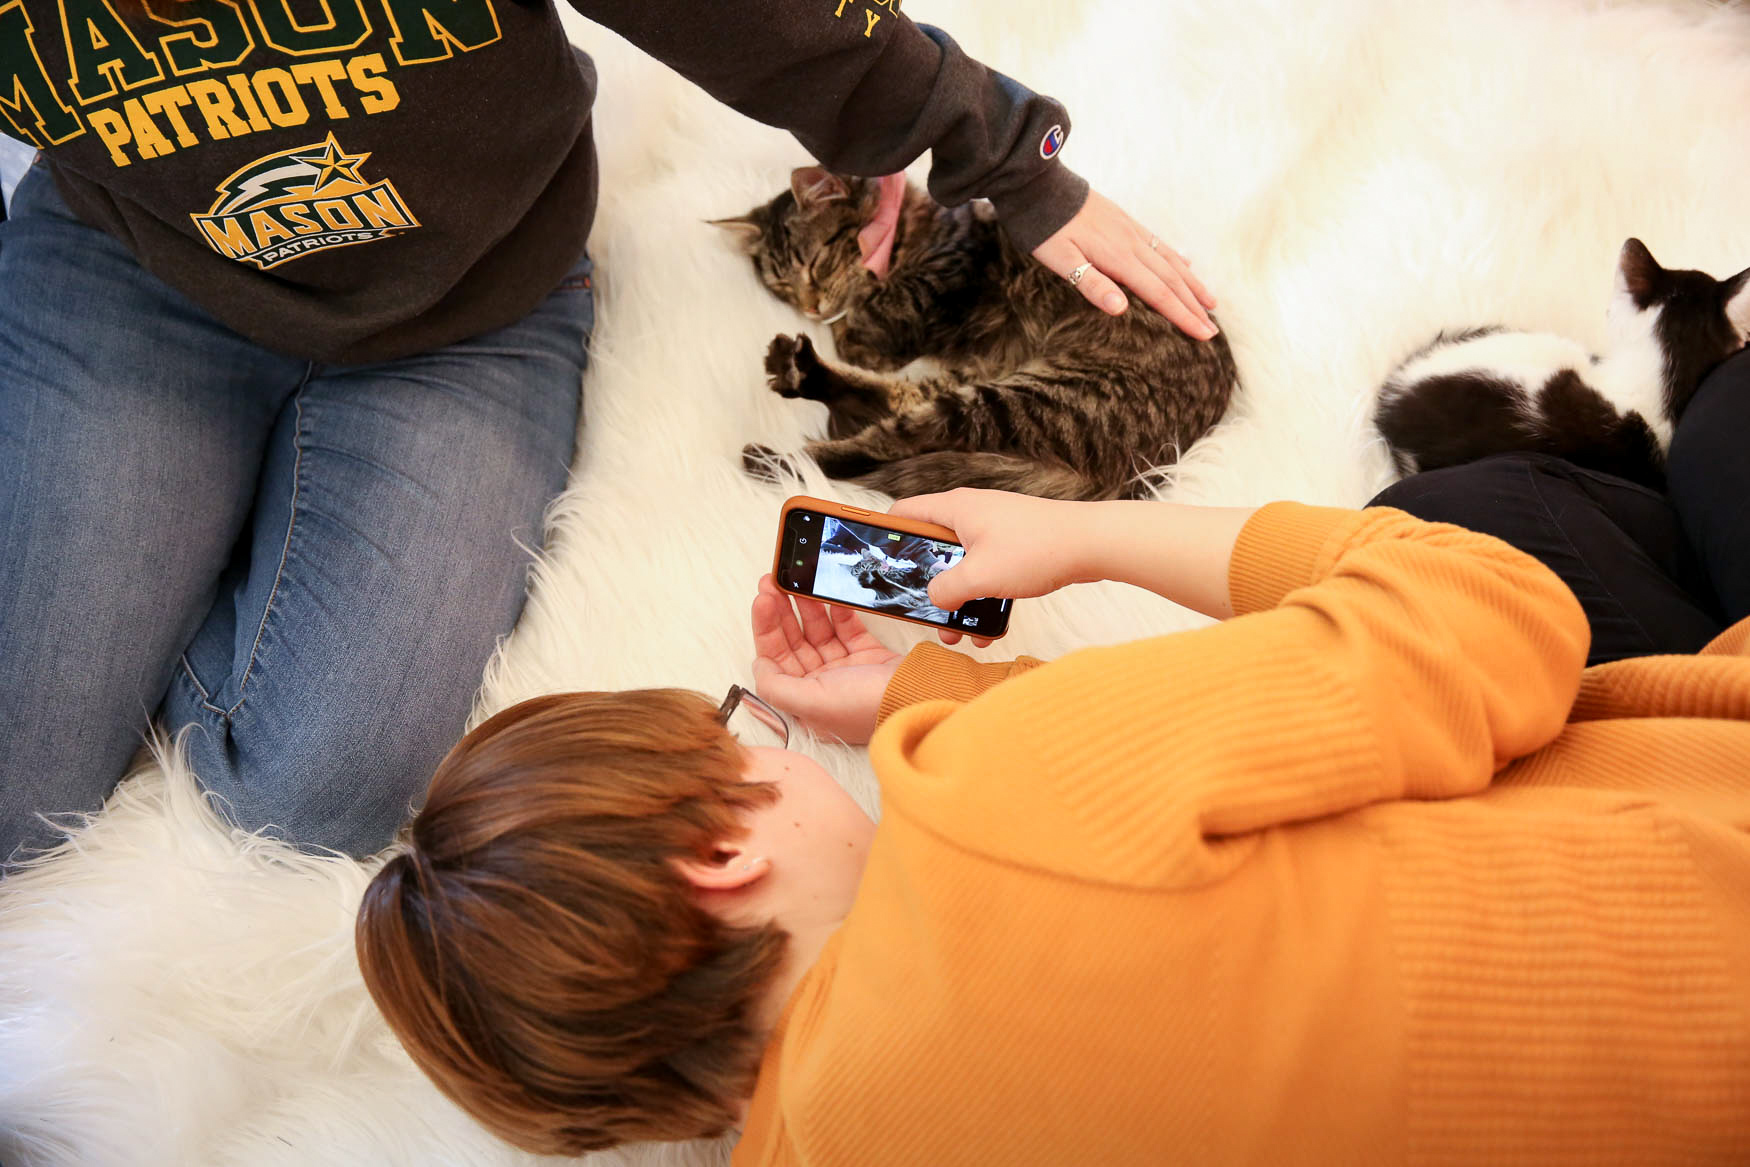 If you're looking to adopt a cat or just want to spend an afternoon playing with kitties, you're in luck. The Kitten Lounge at{ }3109 M St NW is officially open for cat cuddling sessions. The pop-up is an offshoot of Crumbs and Whiskers, a kitten cafe in Georgetown, but it's not just for Instagrammable cat moments; the lounge's mission is to help get kittens from high kill shelters into a loving home. Every spring, shelters are flooded with kittens and The Kitten Lounge aims to adopt out some 500 cats before the pop-up ends. The Kitten Lounge is taking appointments for 15-70 minute kitten cuddling sessions, where you can also apply to adopt a cat. (Amanda Andrade-Rhoades/DC Refined)